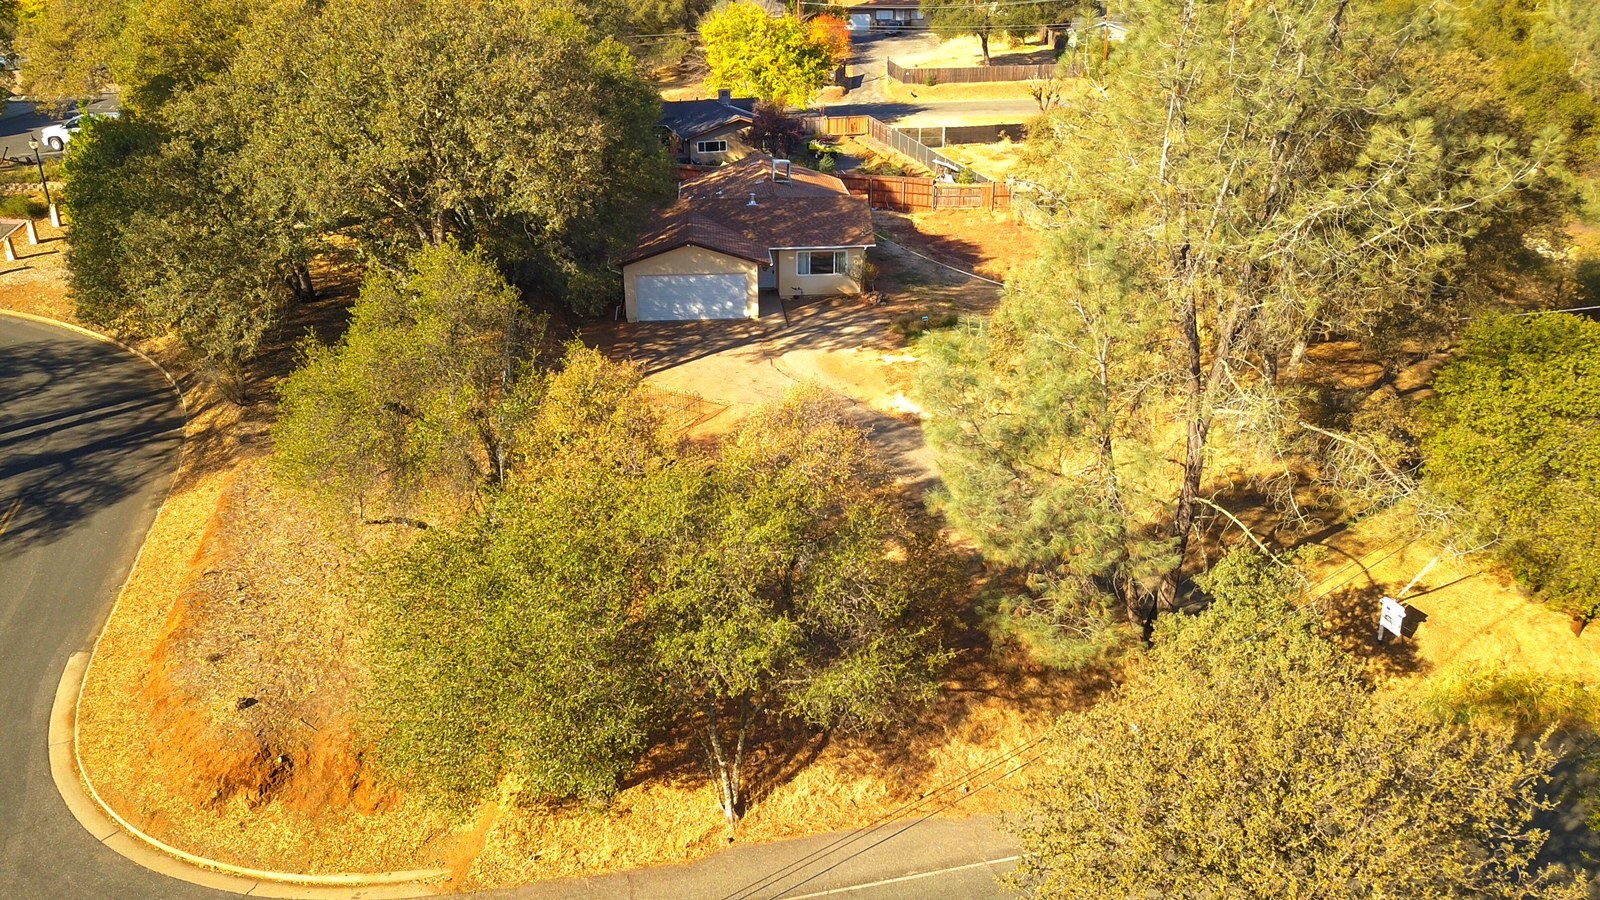 Lake Foothills Property For Sale Oroville, Ca Owner Finance